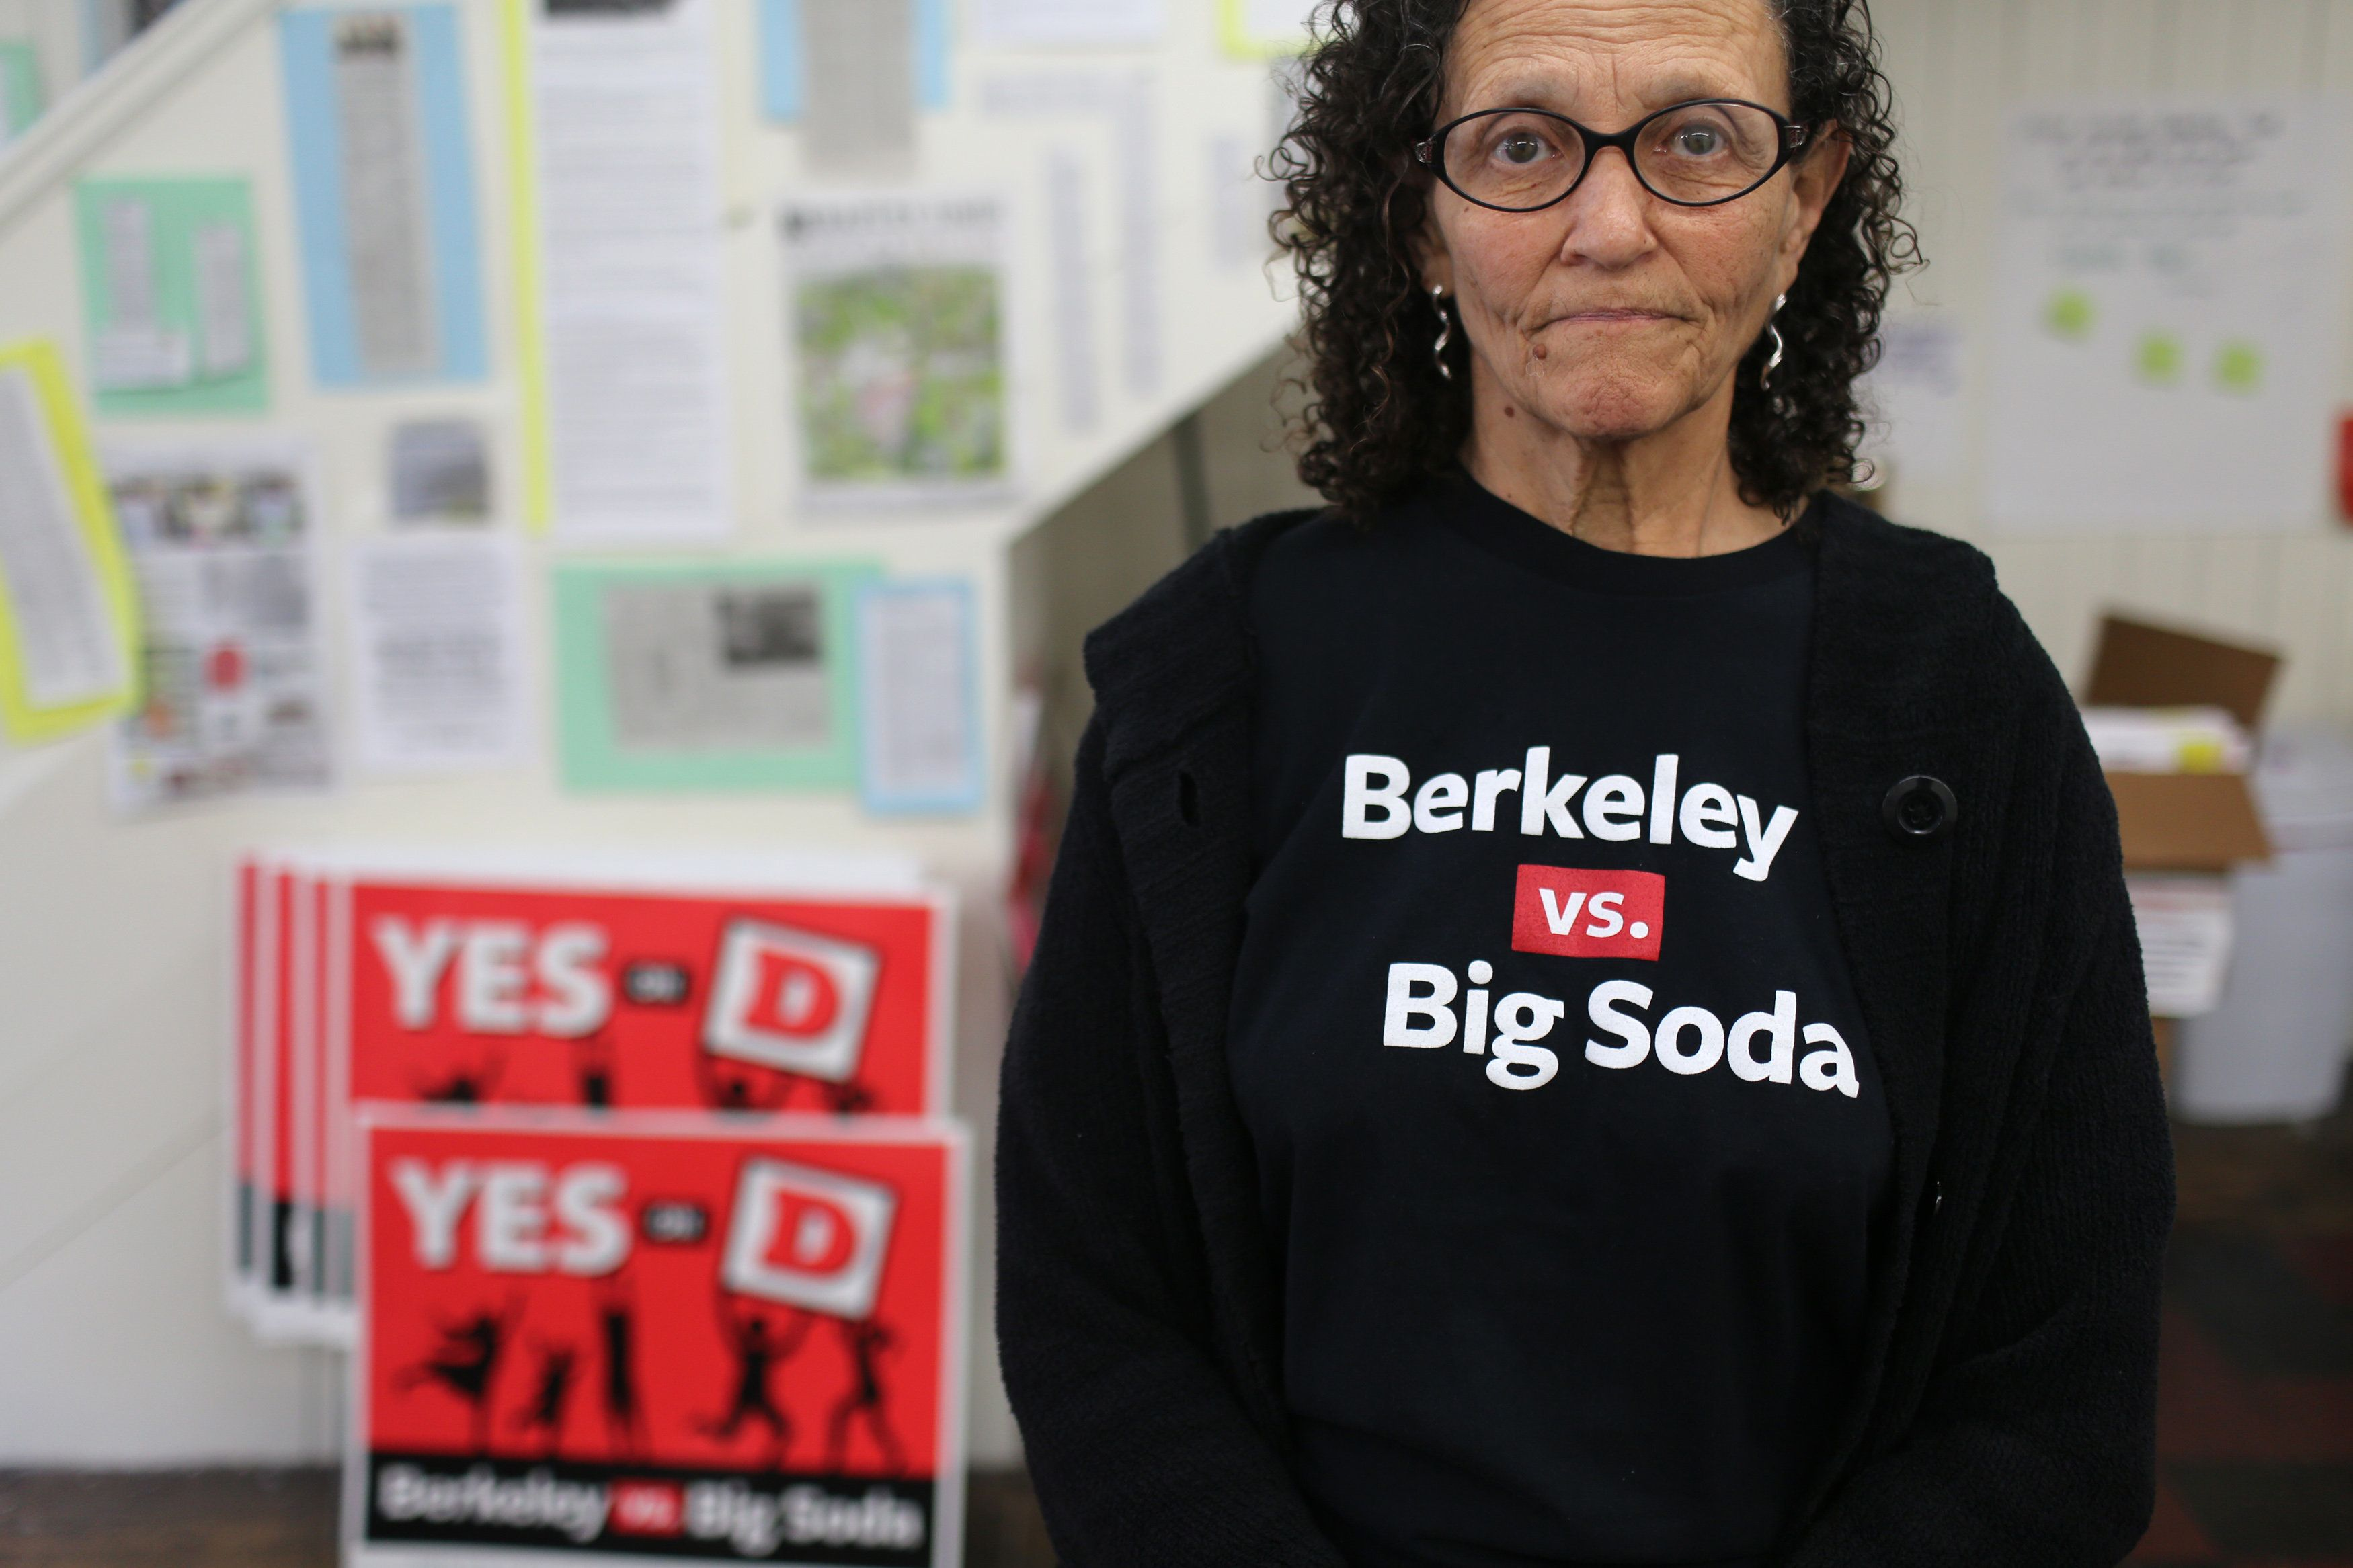 """Dr. Vicki Alexander, co-chairman of the """"Yes on D"""" campaign, poses for a portrait in Berkeley, Californiain 2014."""